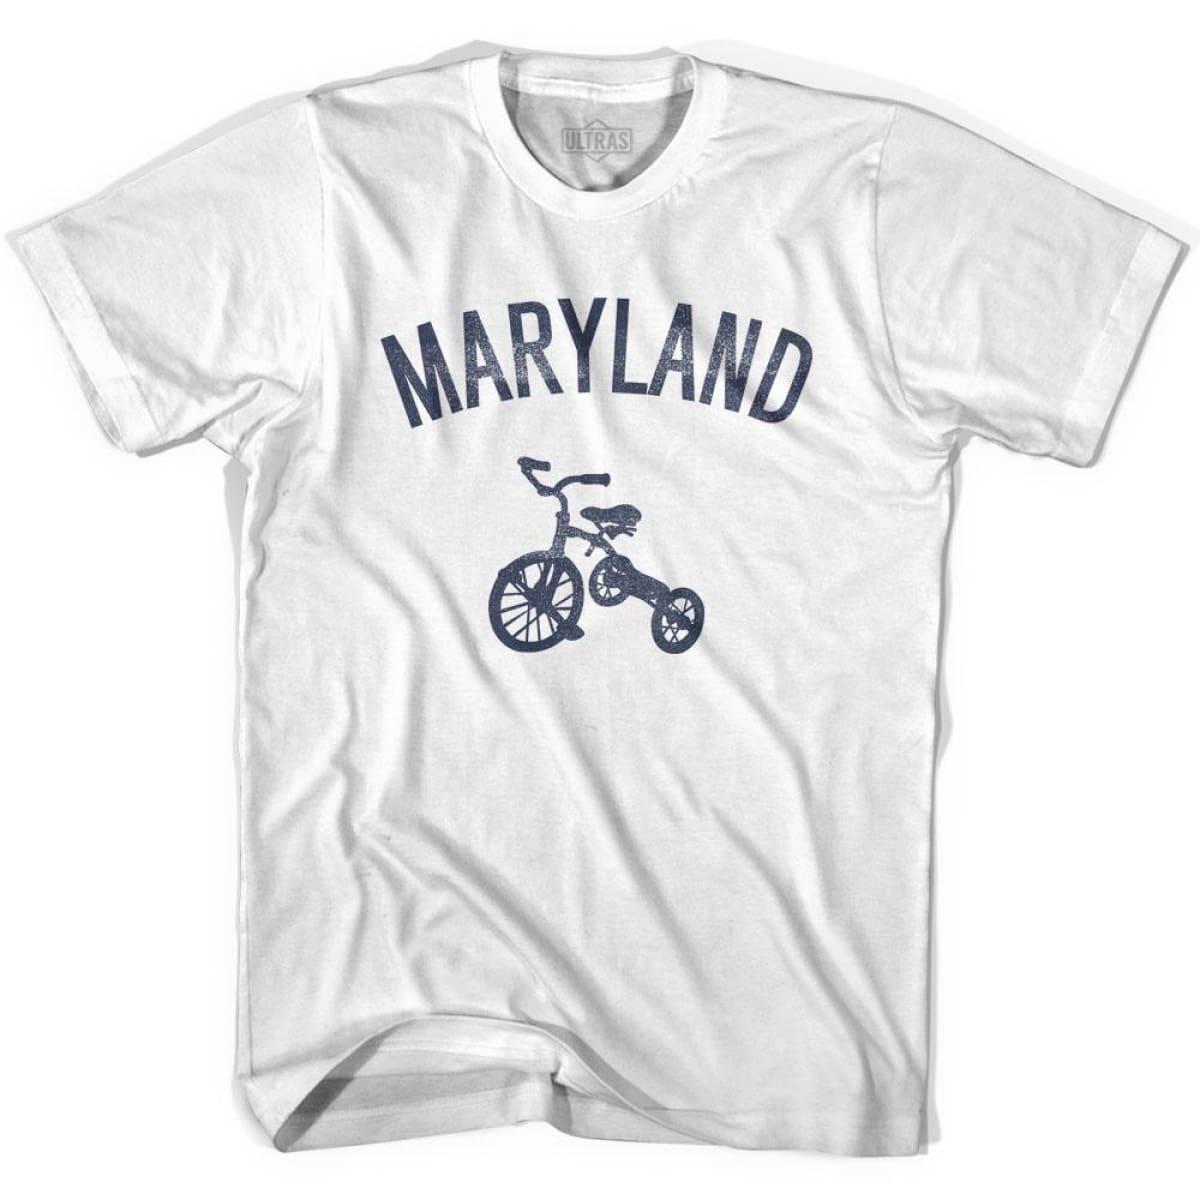 Maryland State Tricycle Womens Cotton T-shirt - White / Womens Small - Tricycle State